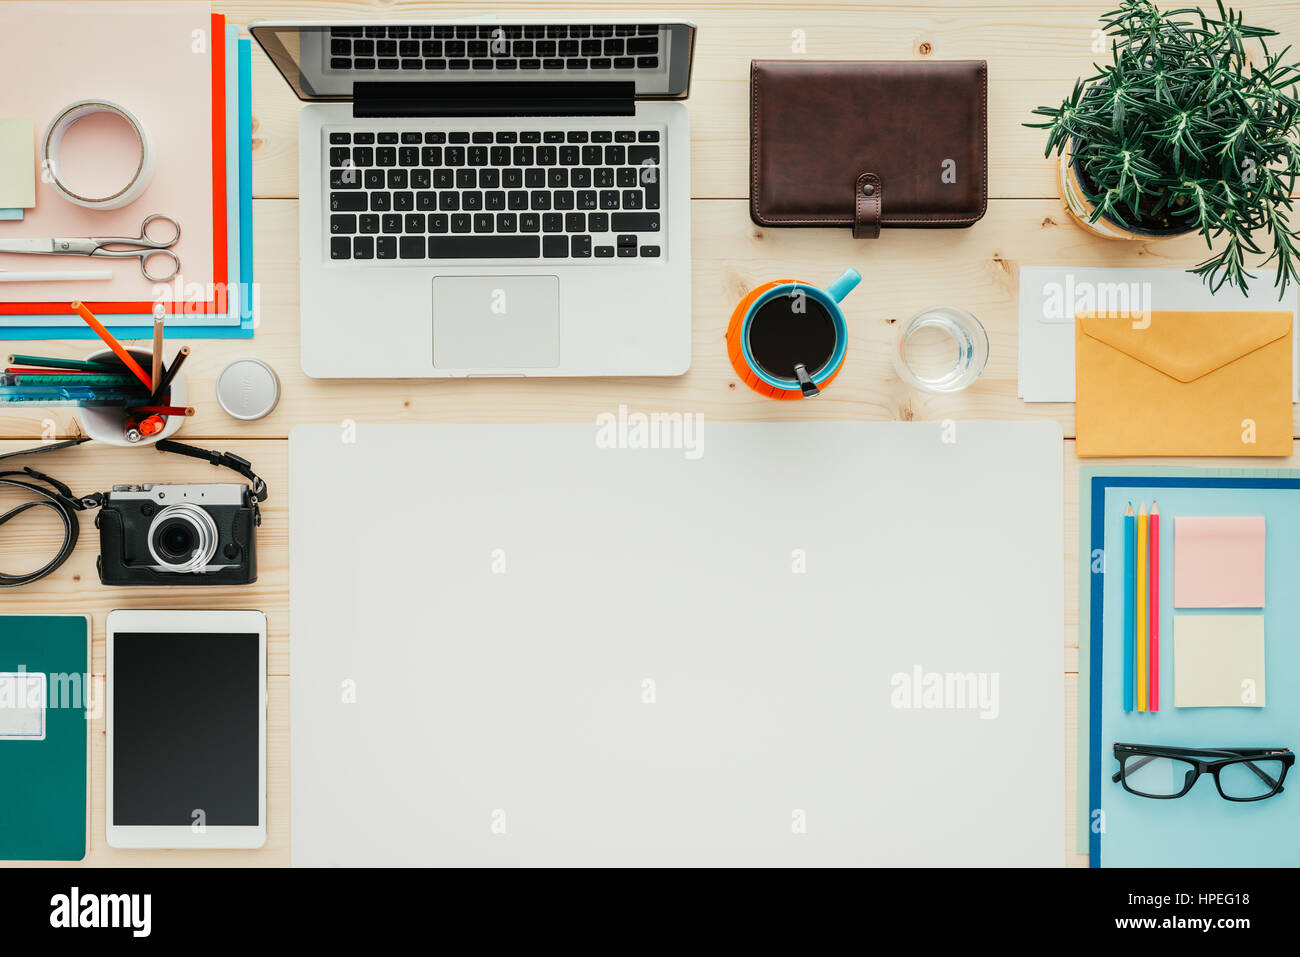 creative office supplies. Creative Contemporary Desktop With Laptop, Digital Tablet, Camera And Office Supplies, Flat Lay Banner Copy Space Supplies